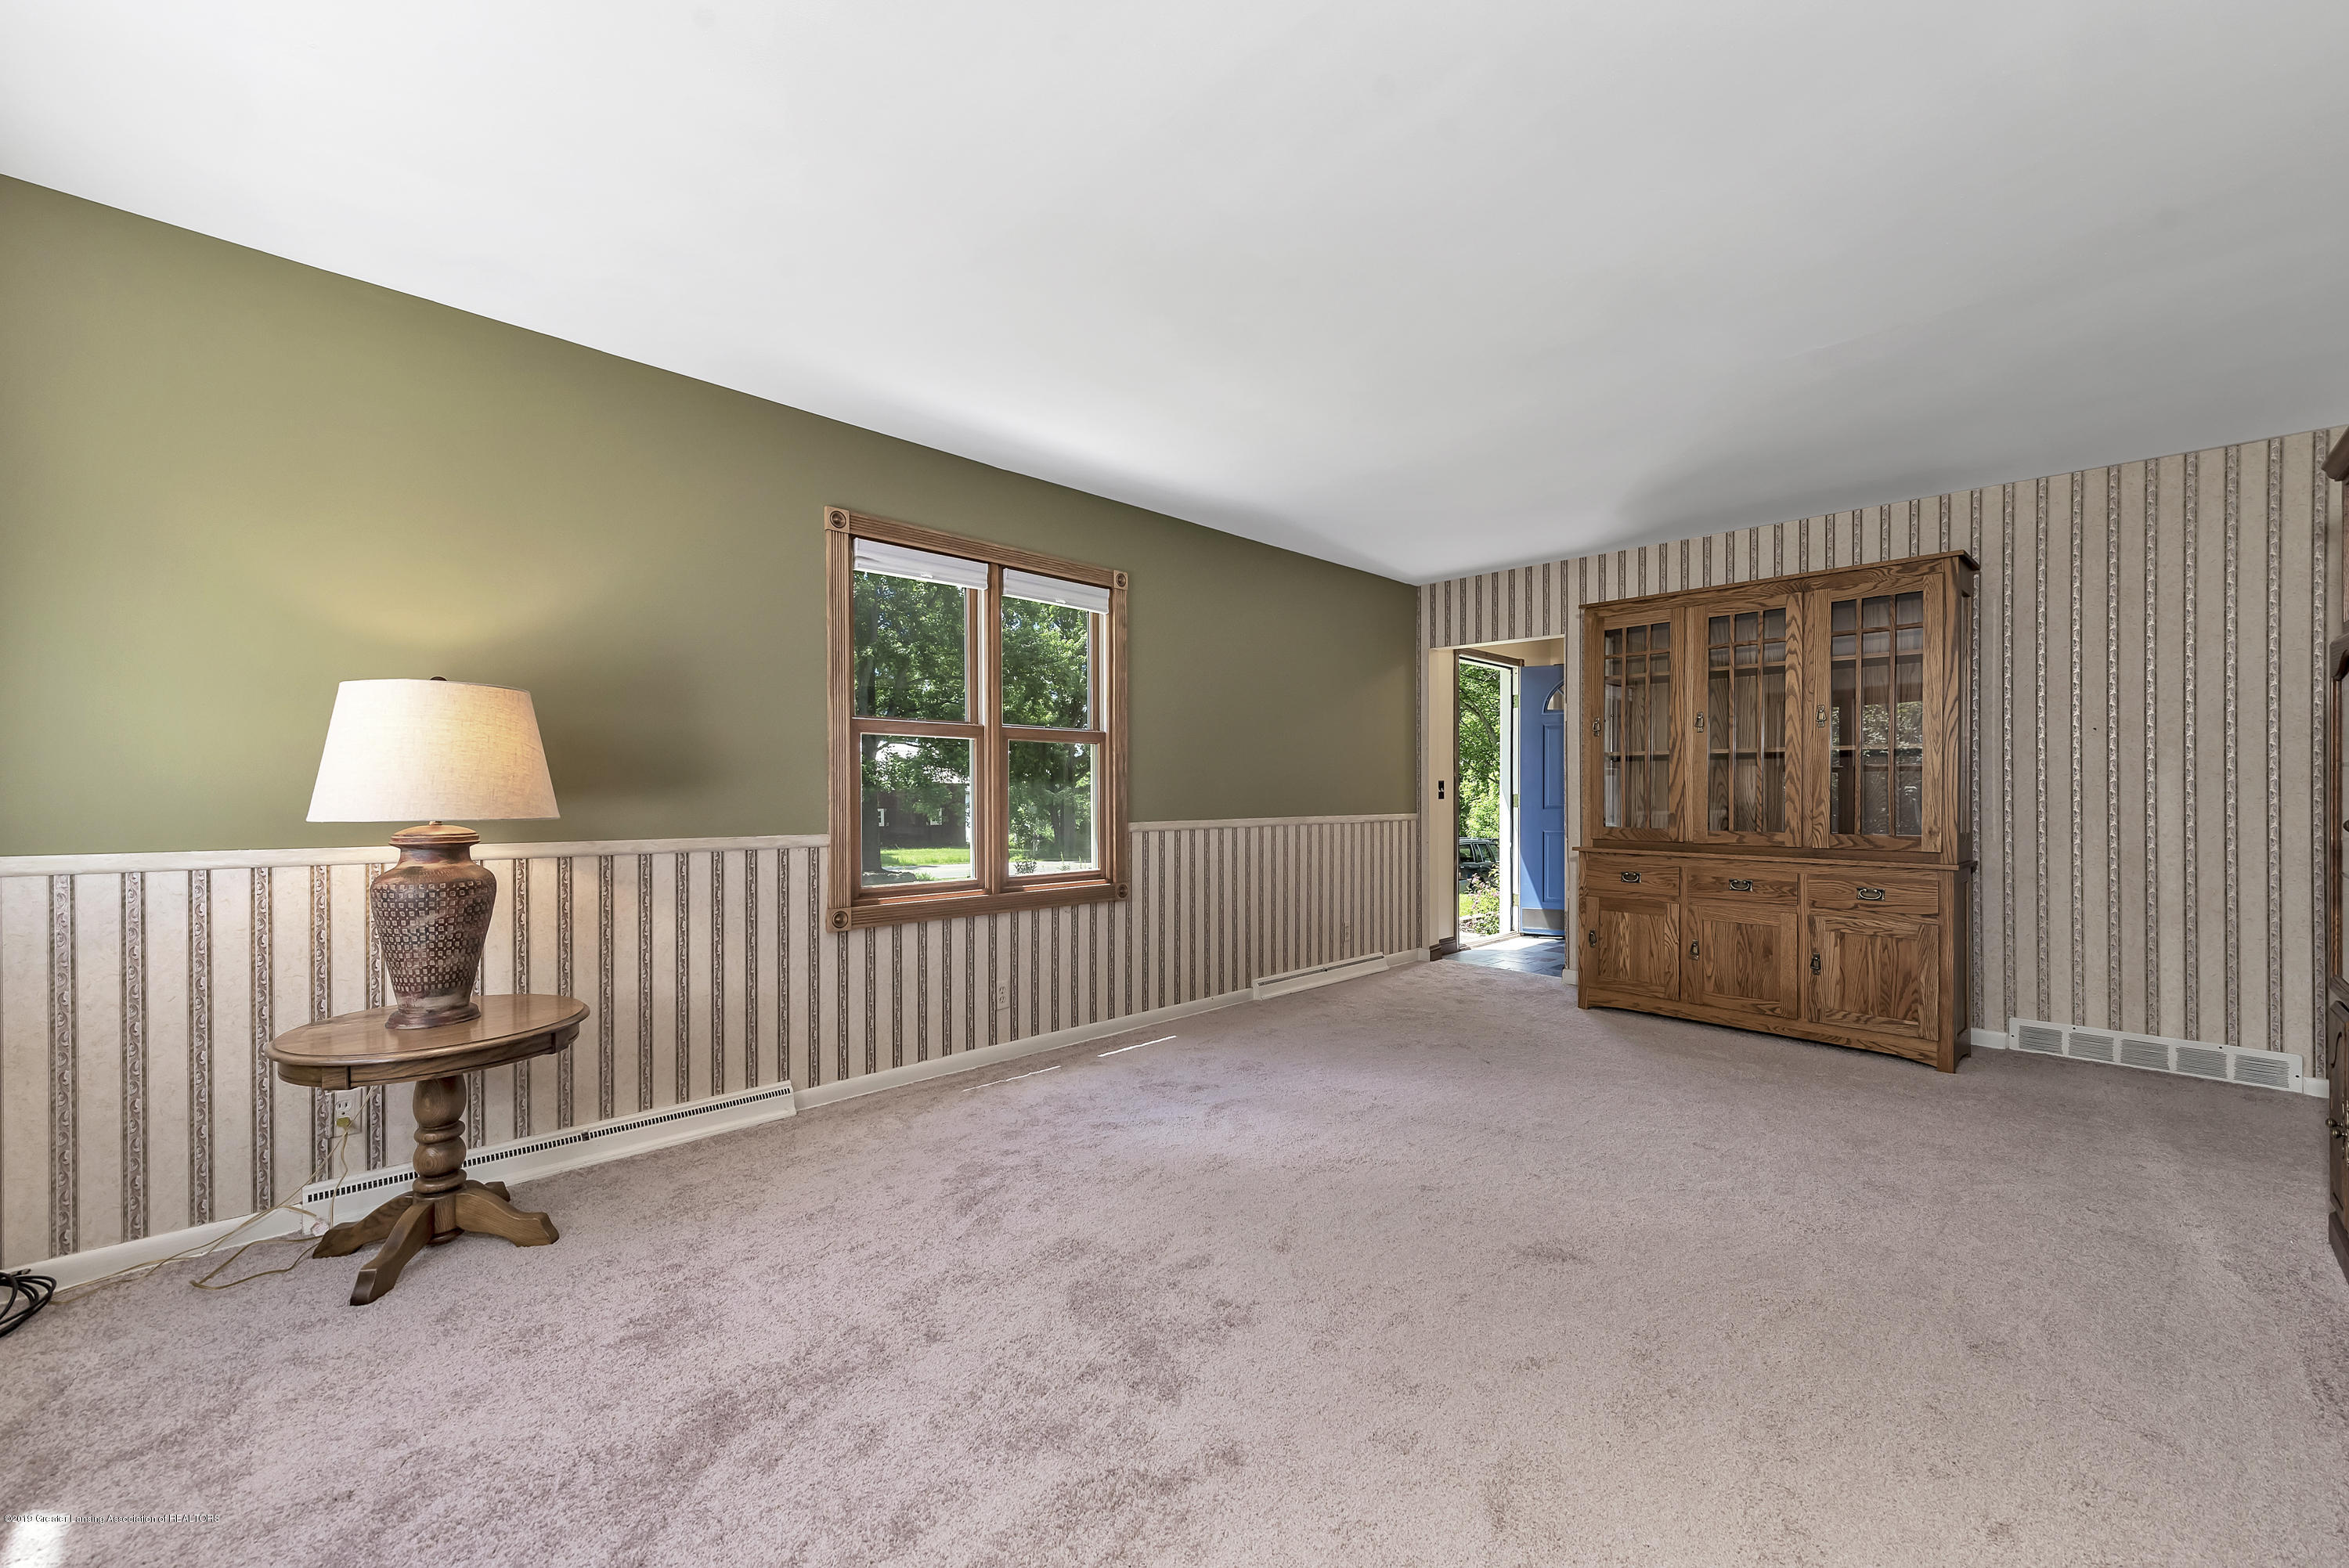 699 Sherwood Rd - 699-E-Sherwood-Rd-Williamston-windowstil - 9